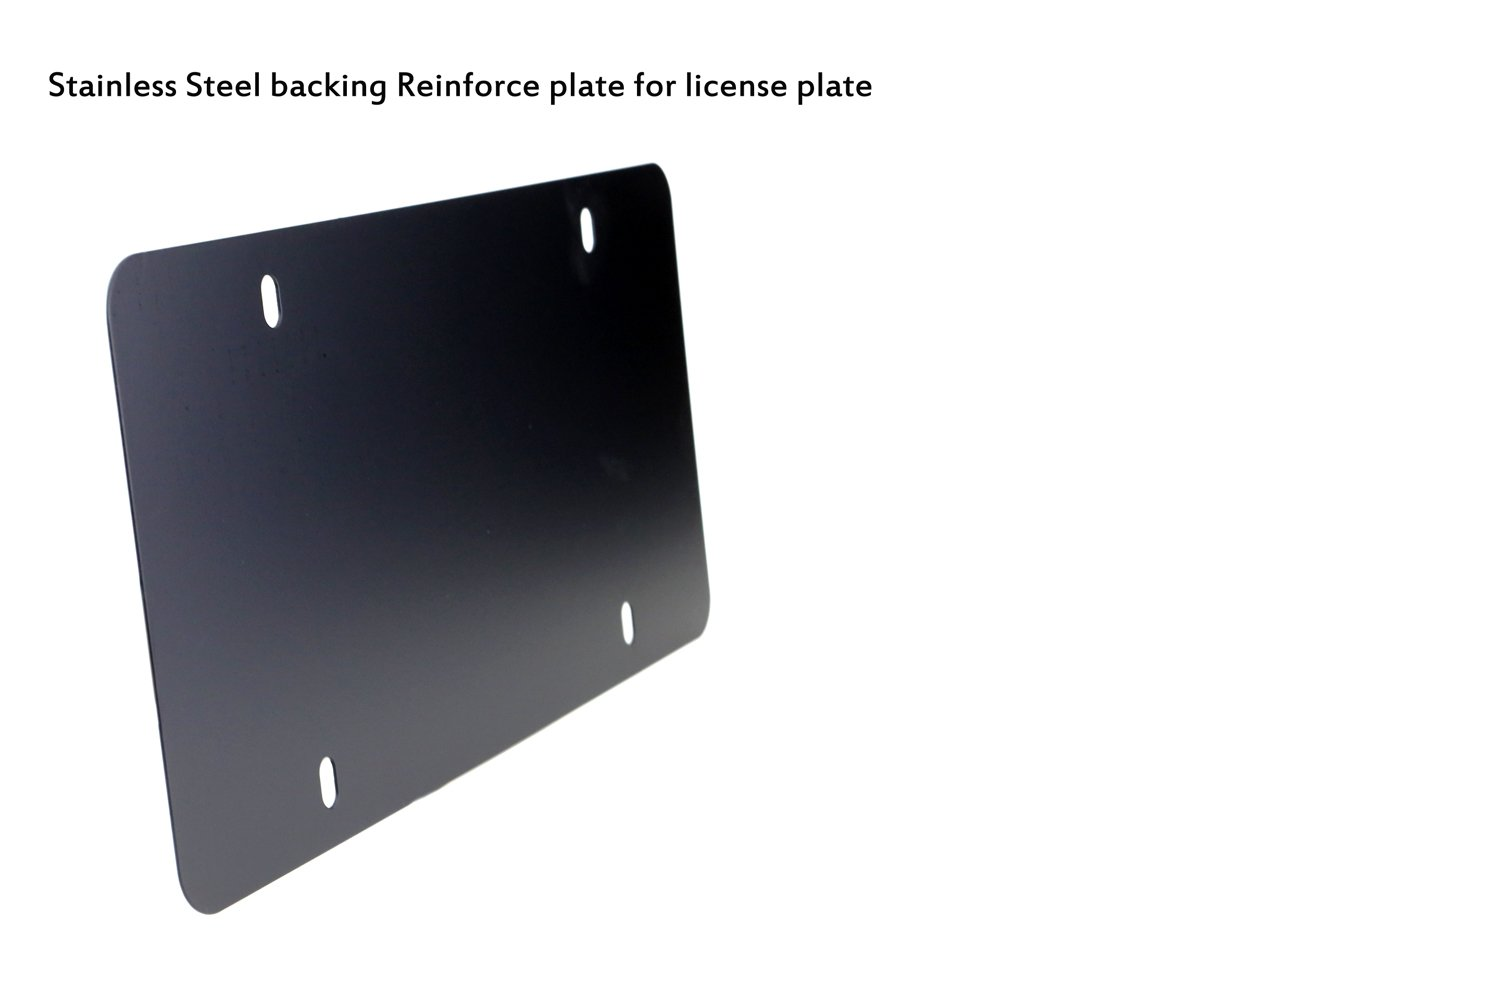 12x6, Black LFPartS Stainless Steel backing Reinforce plate for license plate